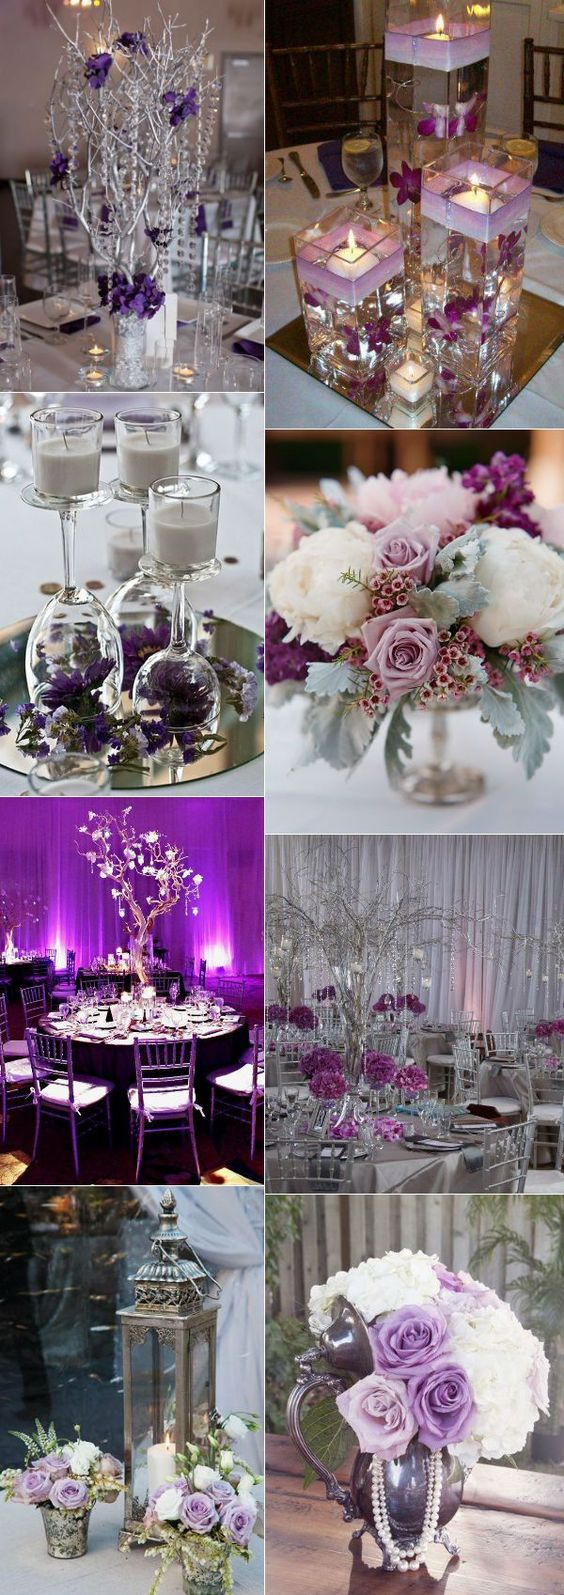 silver wedding decorations purple and silver wedding and silver weddings on pinterest. Black Bedroom Furniture Sets. Home Design Ideas